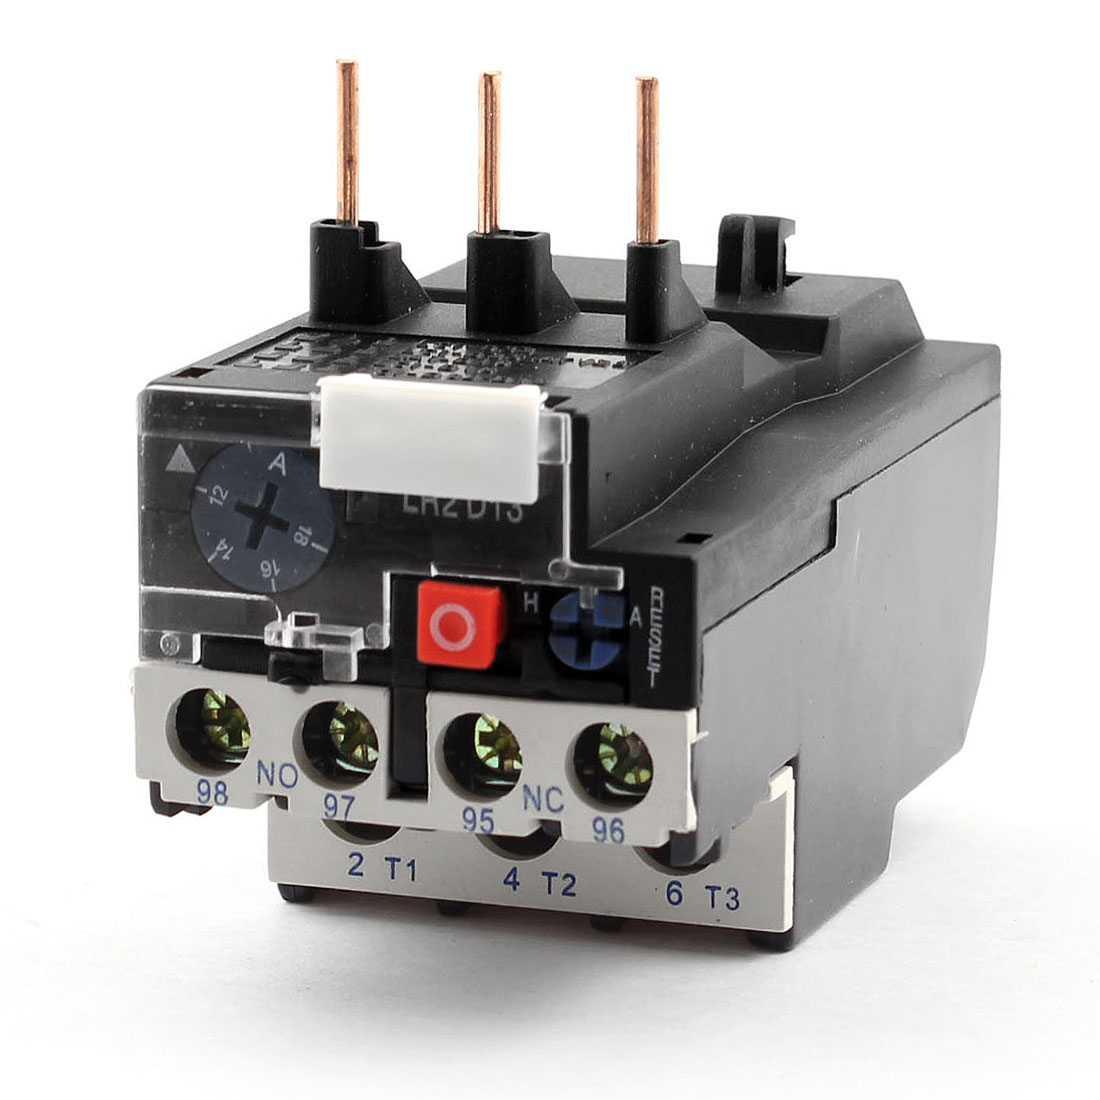 JR2D13 1NO 1NC 3 Phases 12-18A Adjustable Motor Protector Electric Thermal Overload Relay